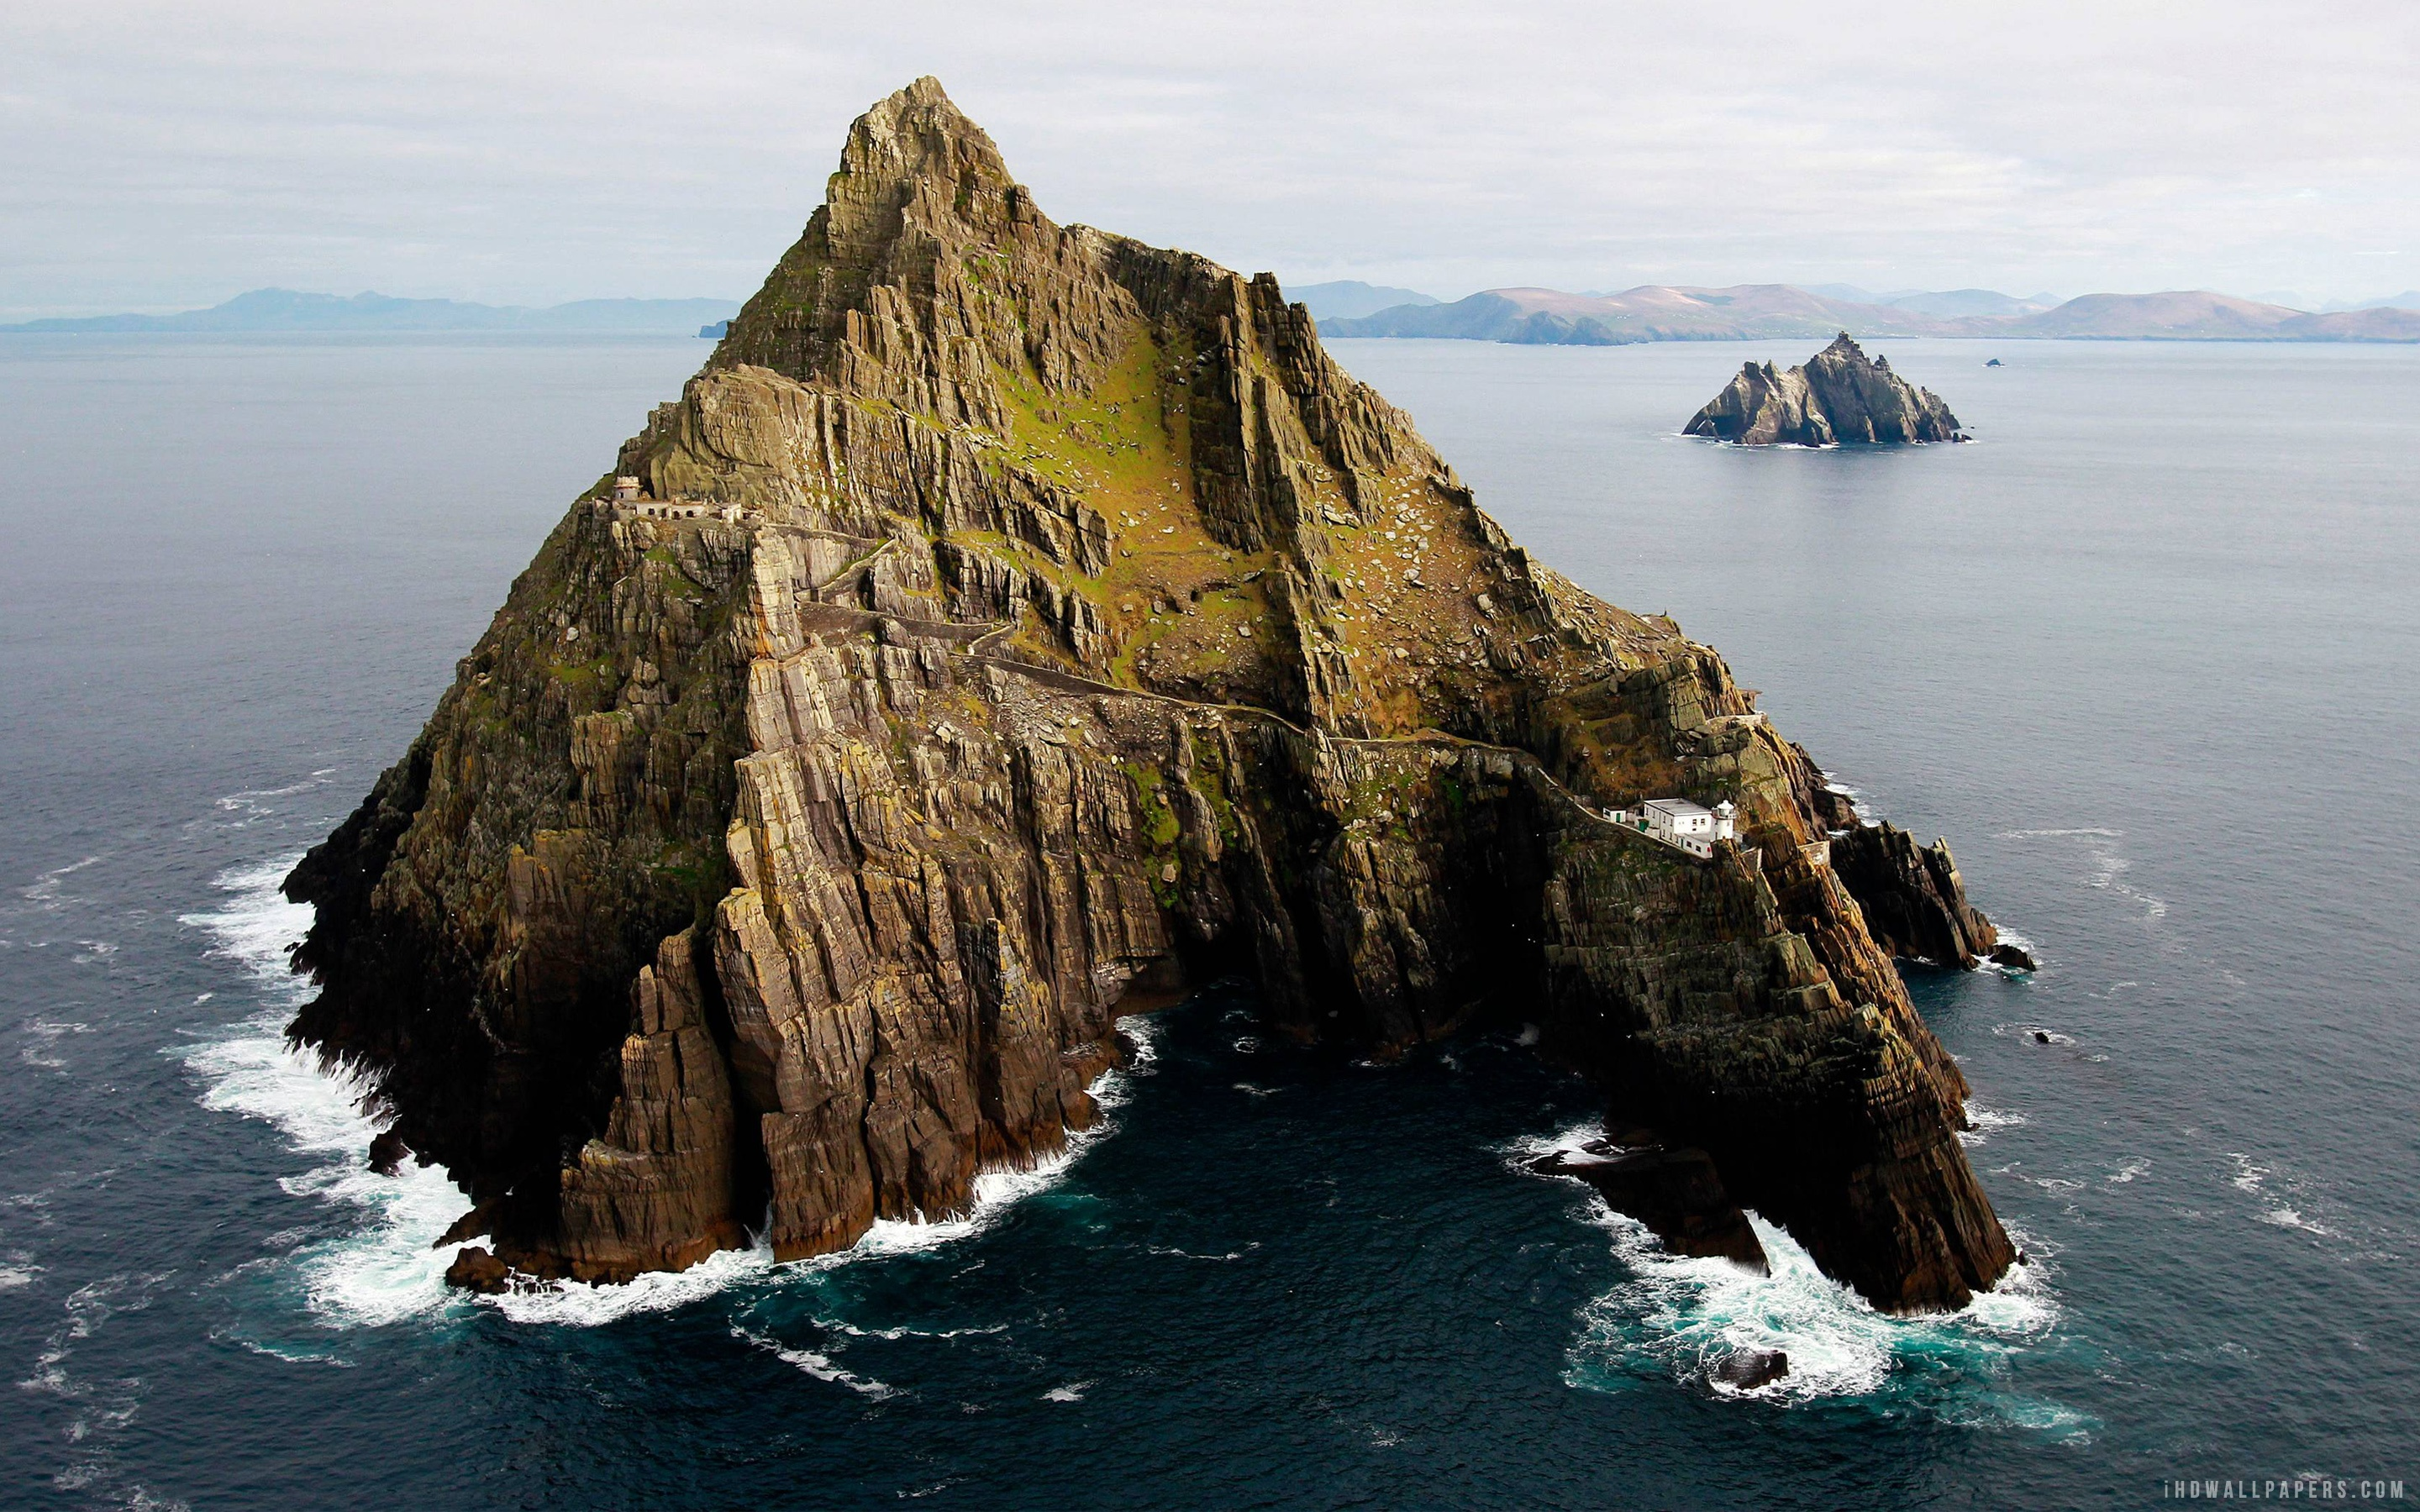 Sony Xperia Hd Wallpaper Free Download Skellig Michael Wallpaper Travel And World Wallpaper